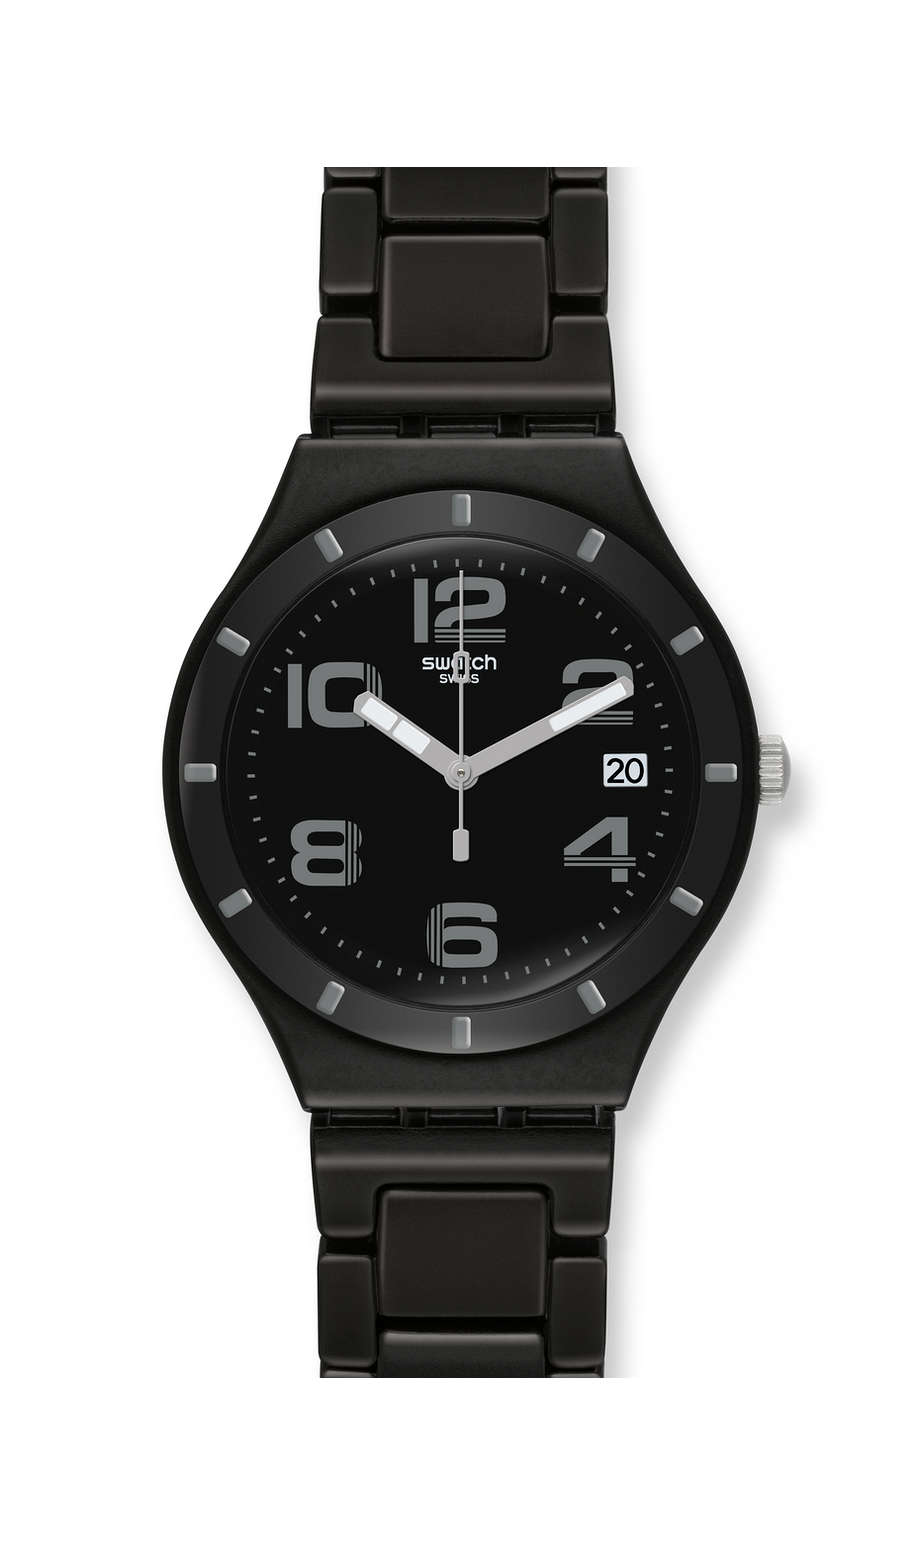 Swatch - ONLY BLACK - 1